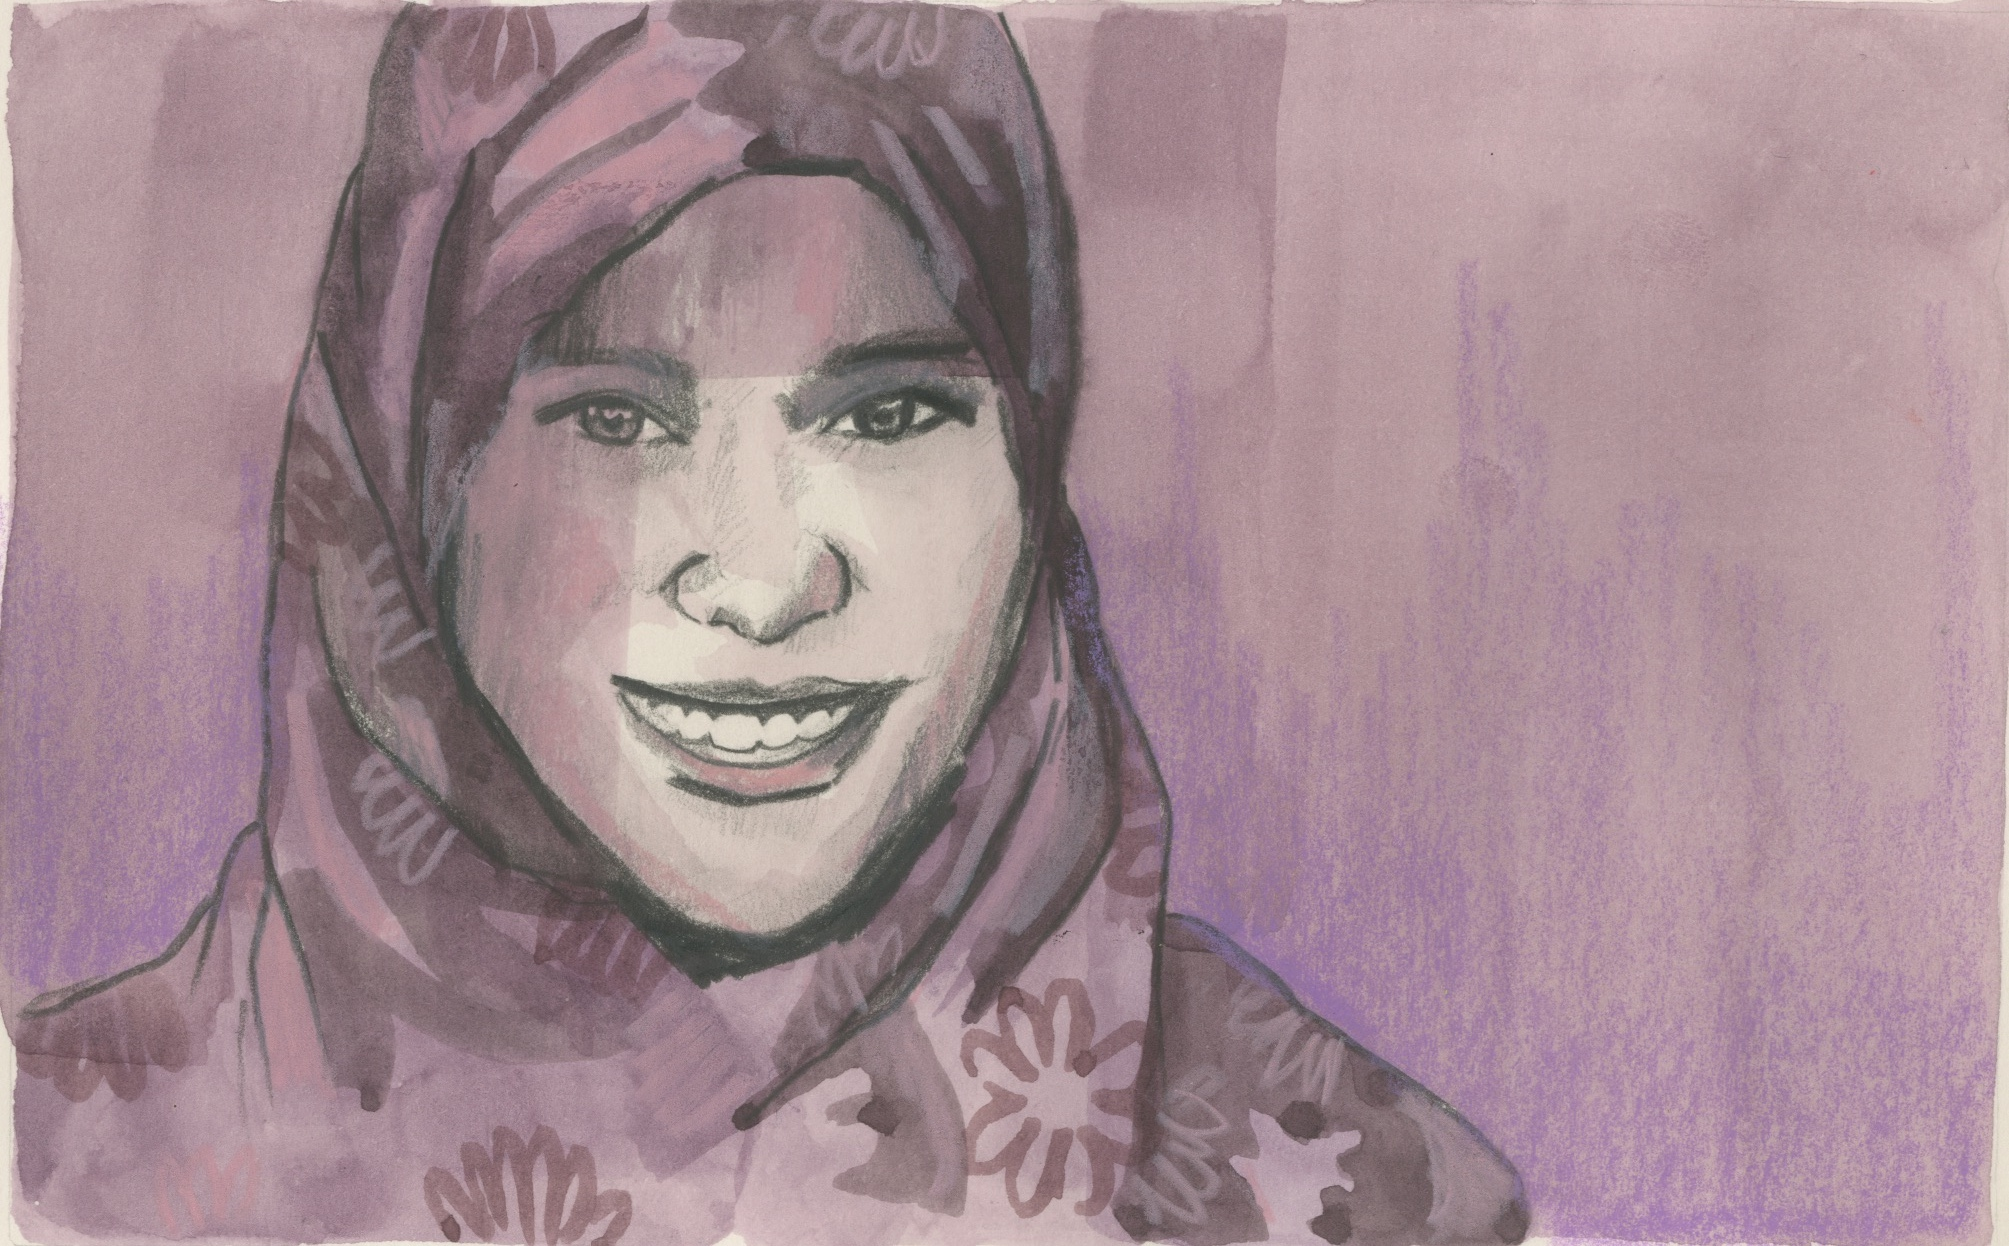 10/02/15 Alaa Murabit leads initiatives to promote the role and rights of women in Libyan society.